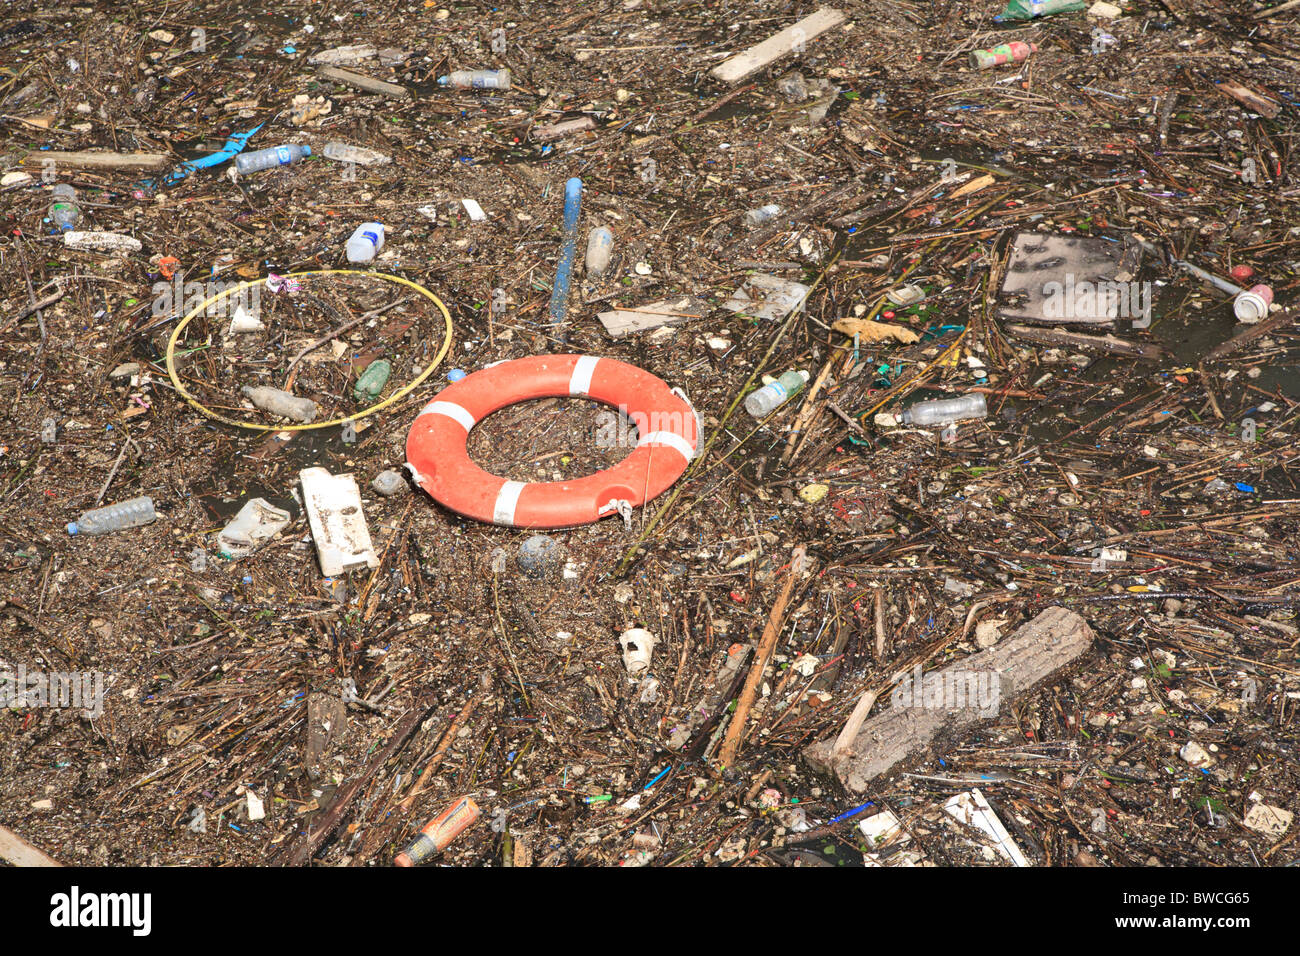 Flotsam and general rubbish floating near Butler's wharf on the River Thames London - Stock Image